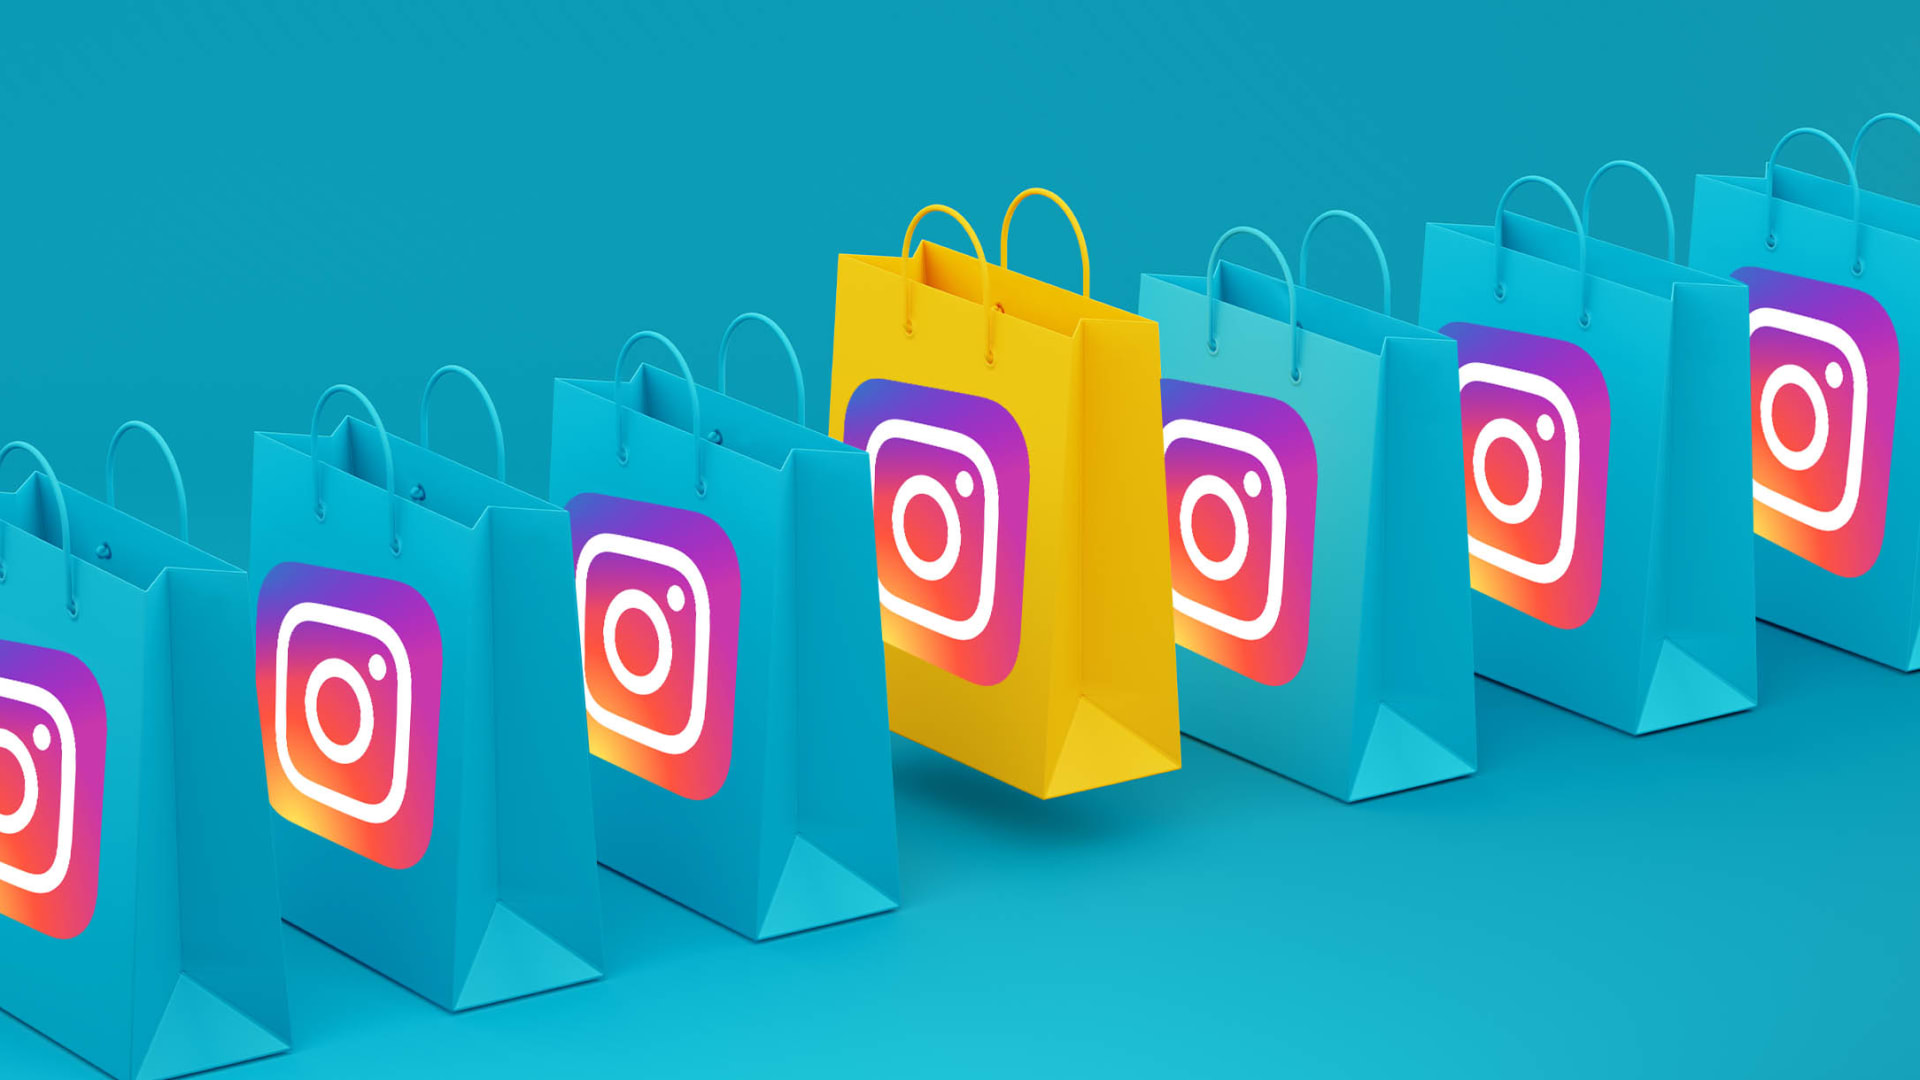 3 Tips for Running a Retail Business on Instagram